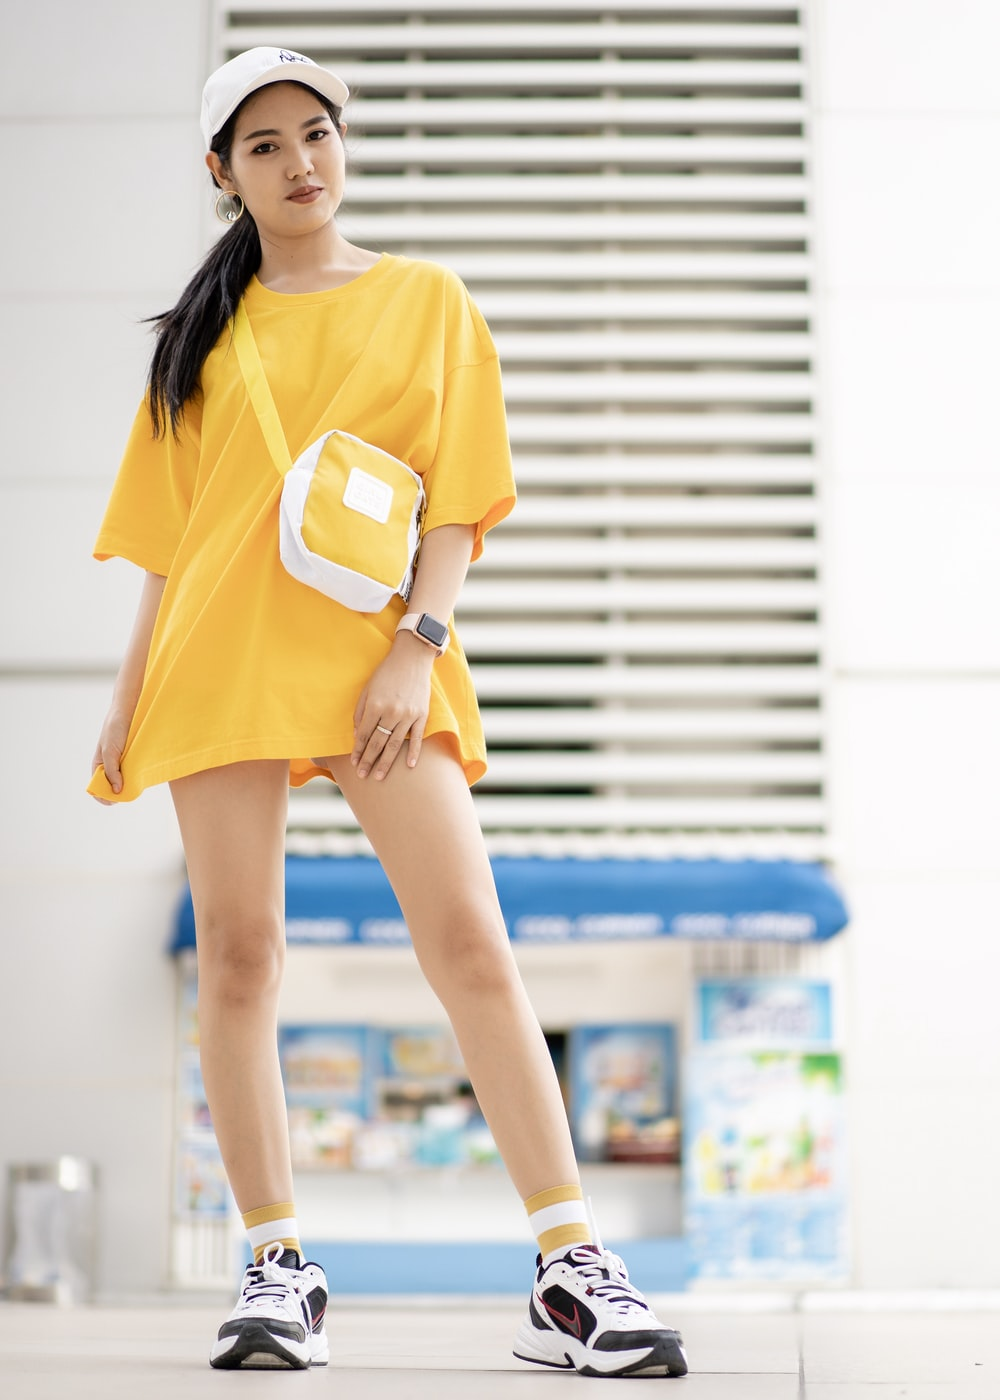 woman wearing yellow crew-neck shirt and yellow and white sling bag